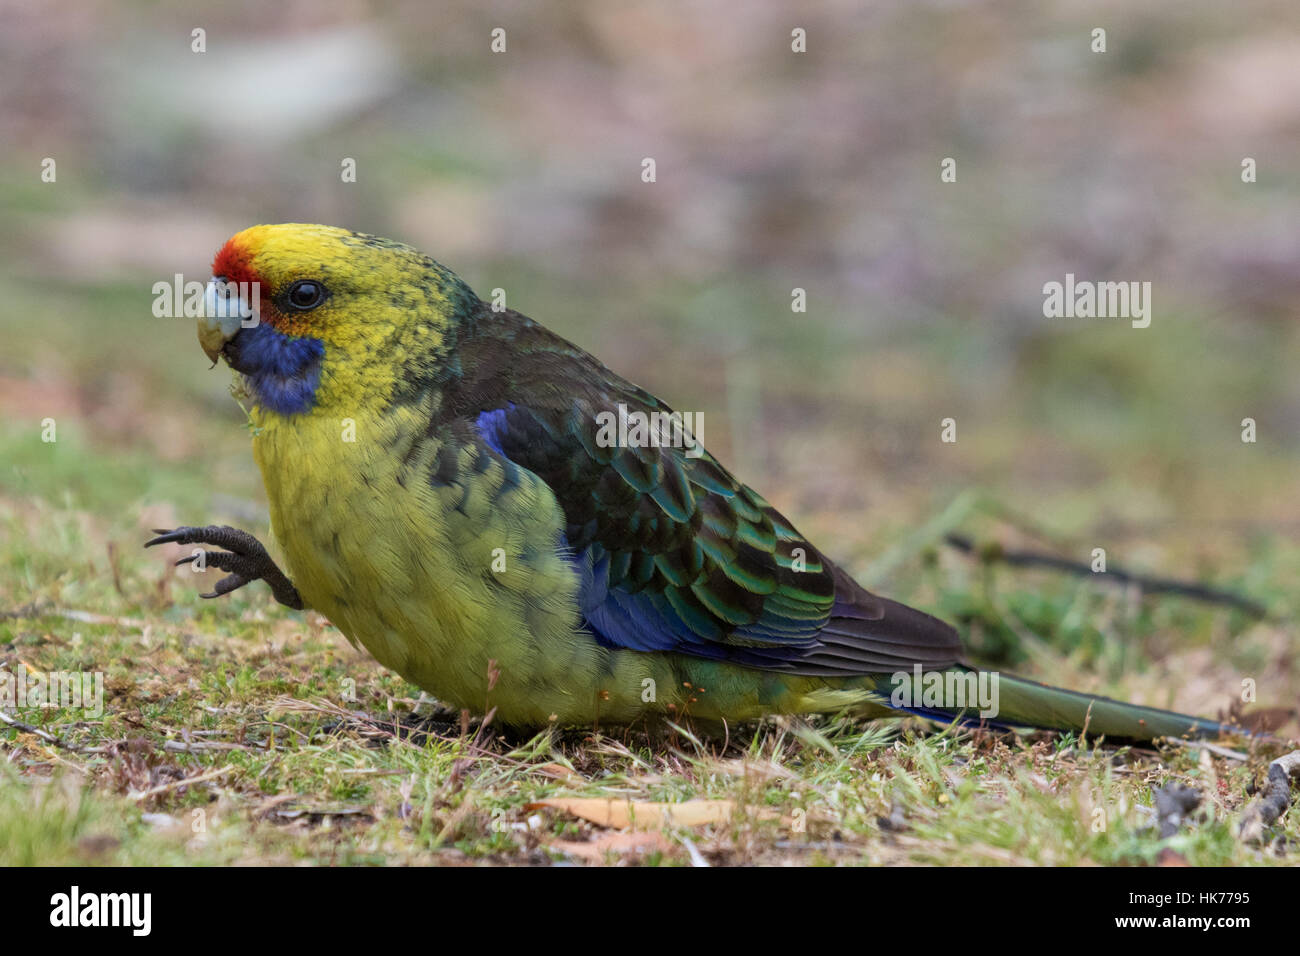 Green Rosella (Platycercus caledonicus) sitting on the ground eating grass seeds - Stock Image